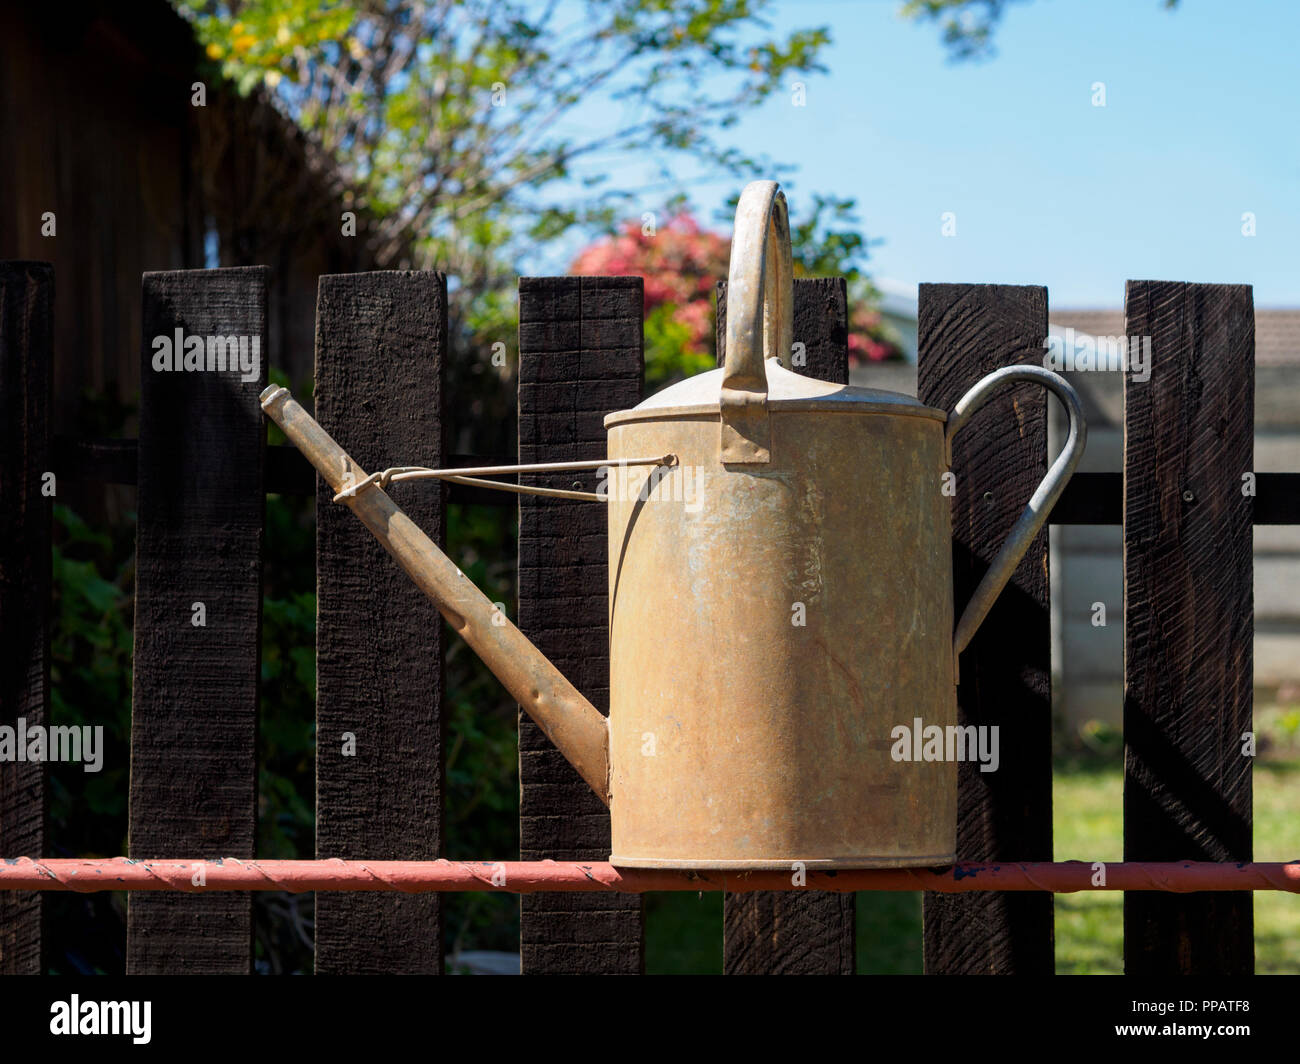 An old galvanized vintage watering can standing in front of a wooden picket fence against a blue sky - Stock Image